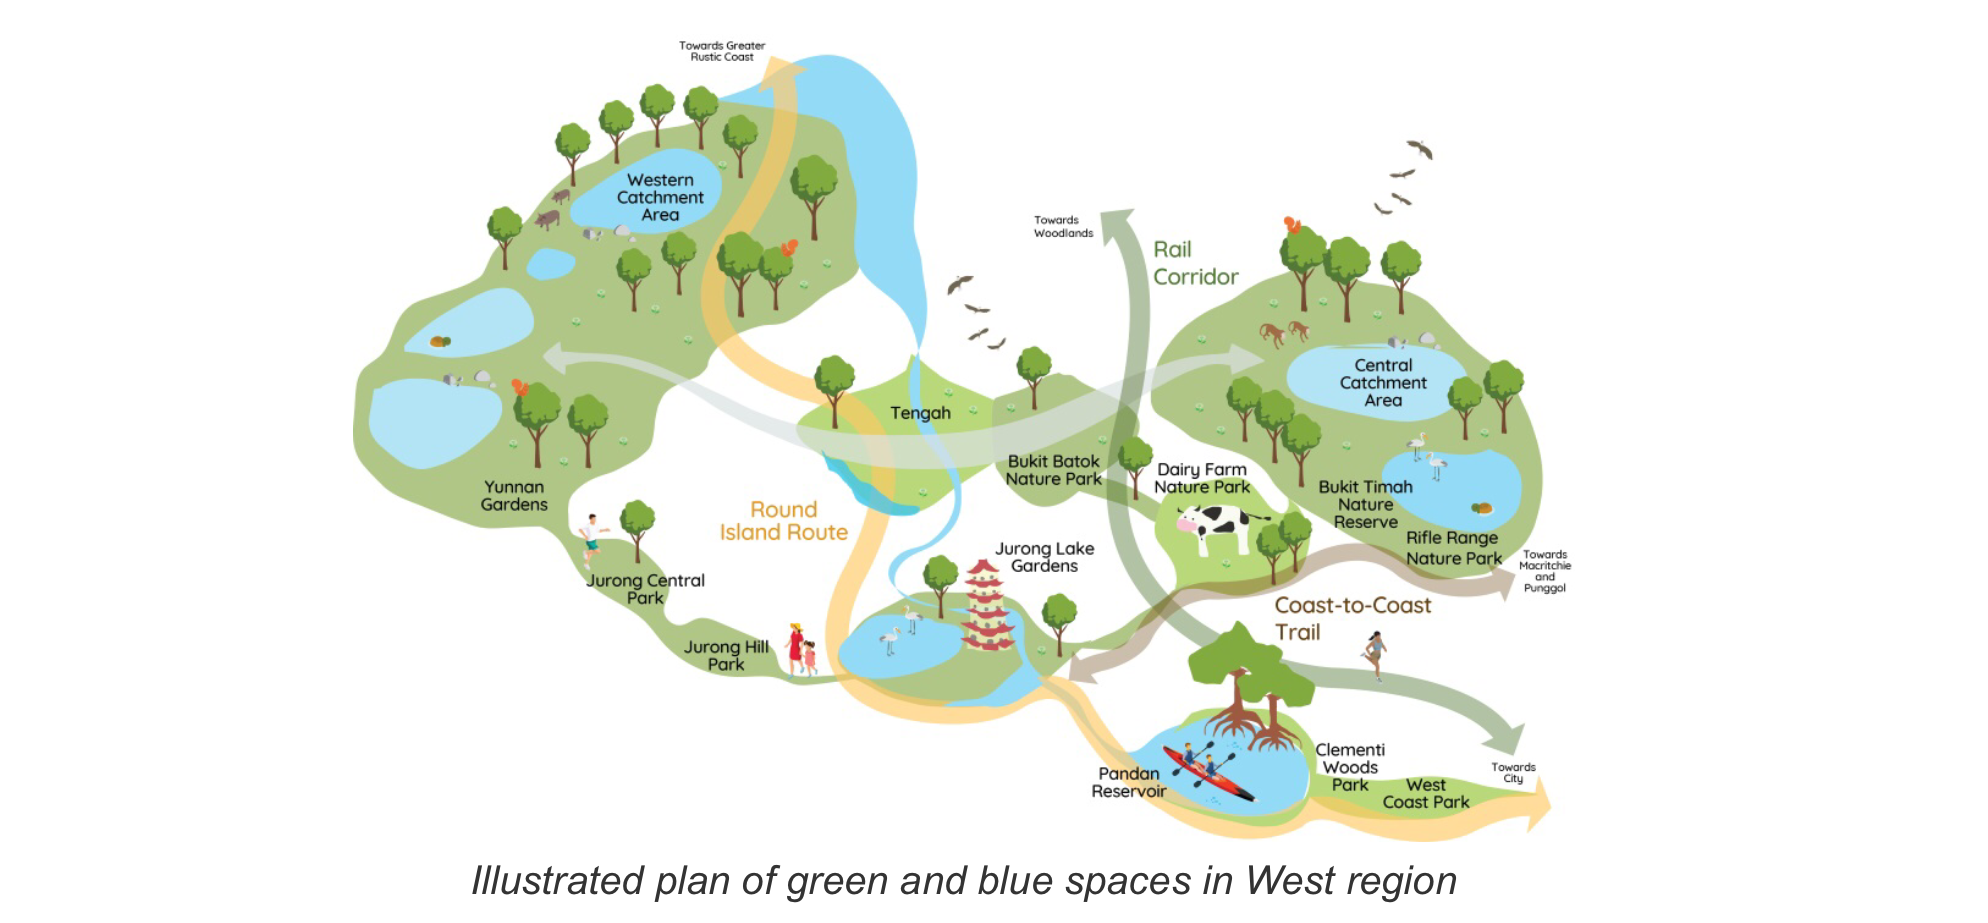 ura master plan 2019 west region on bringing homes closer to nature and waterways